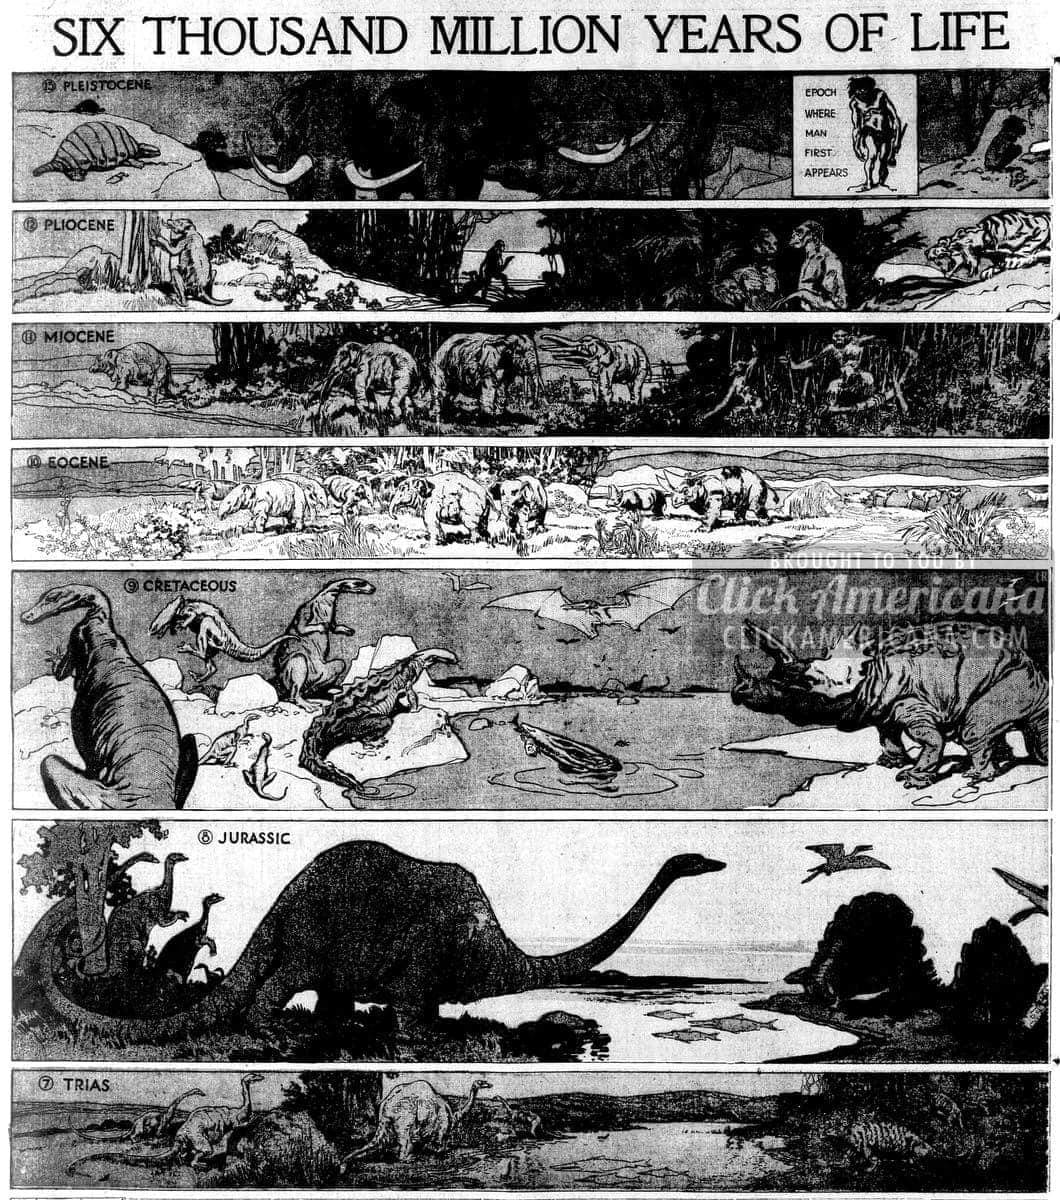 Pleistocene age onward: Six thousand million years of life (1913)